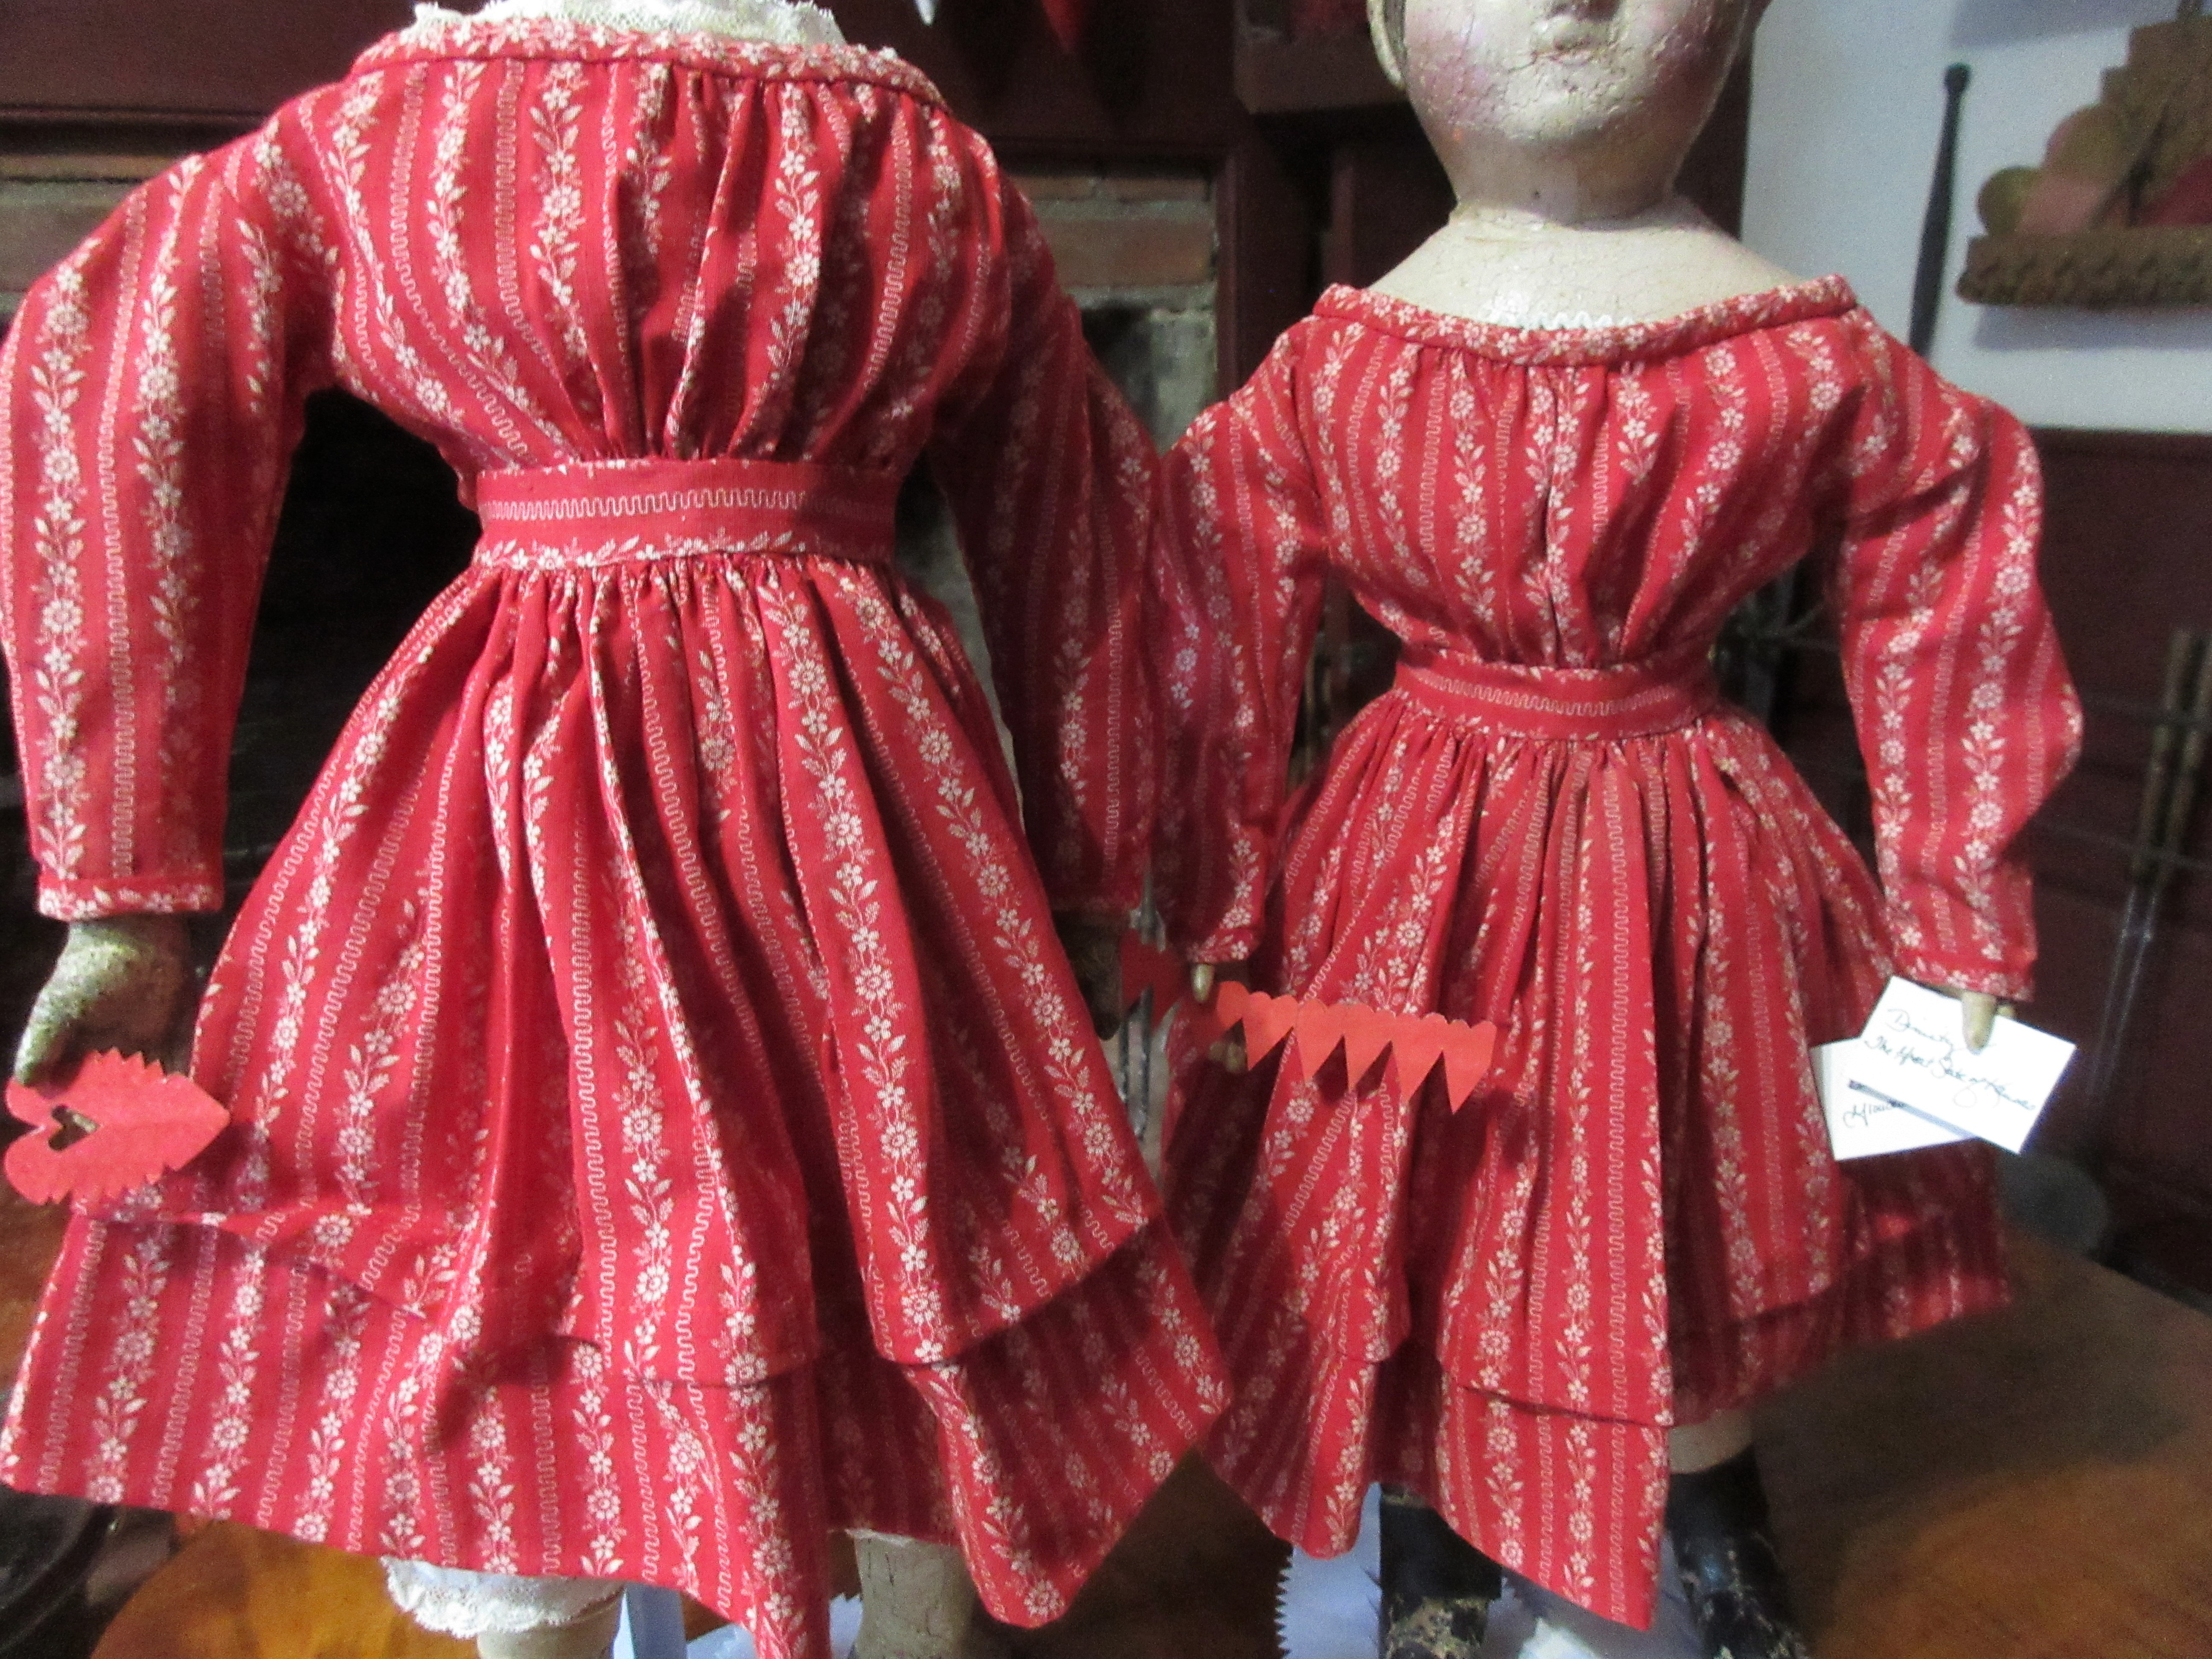 2 dresses available for sale